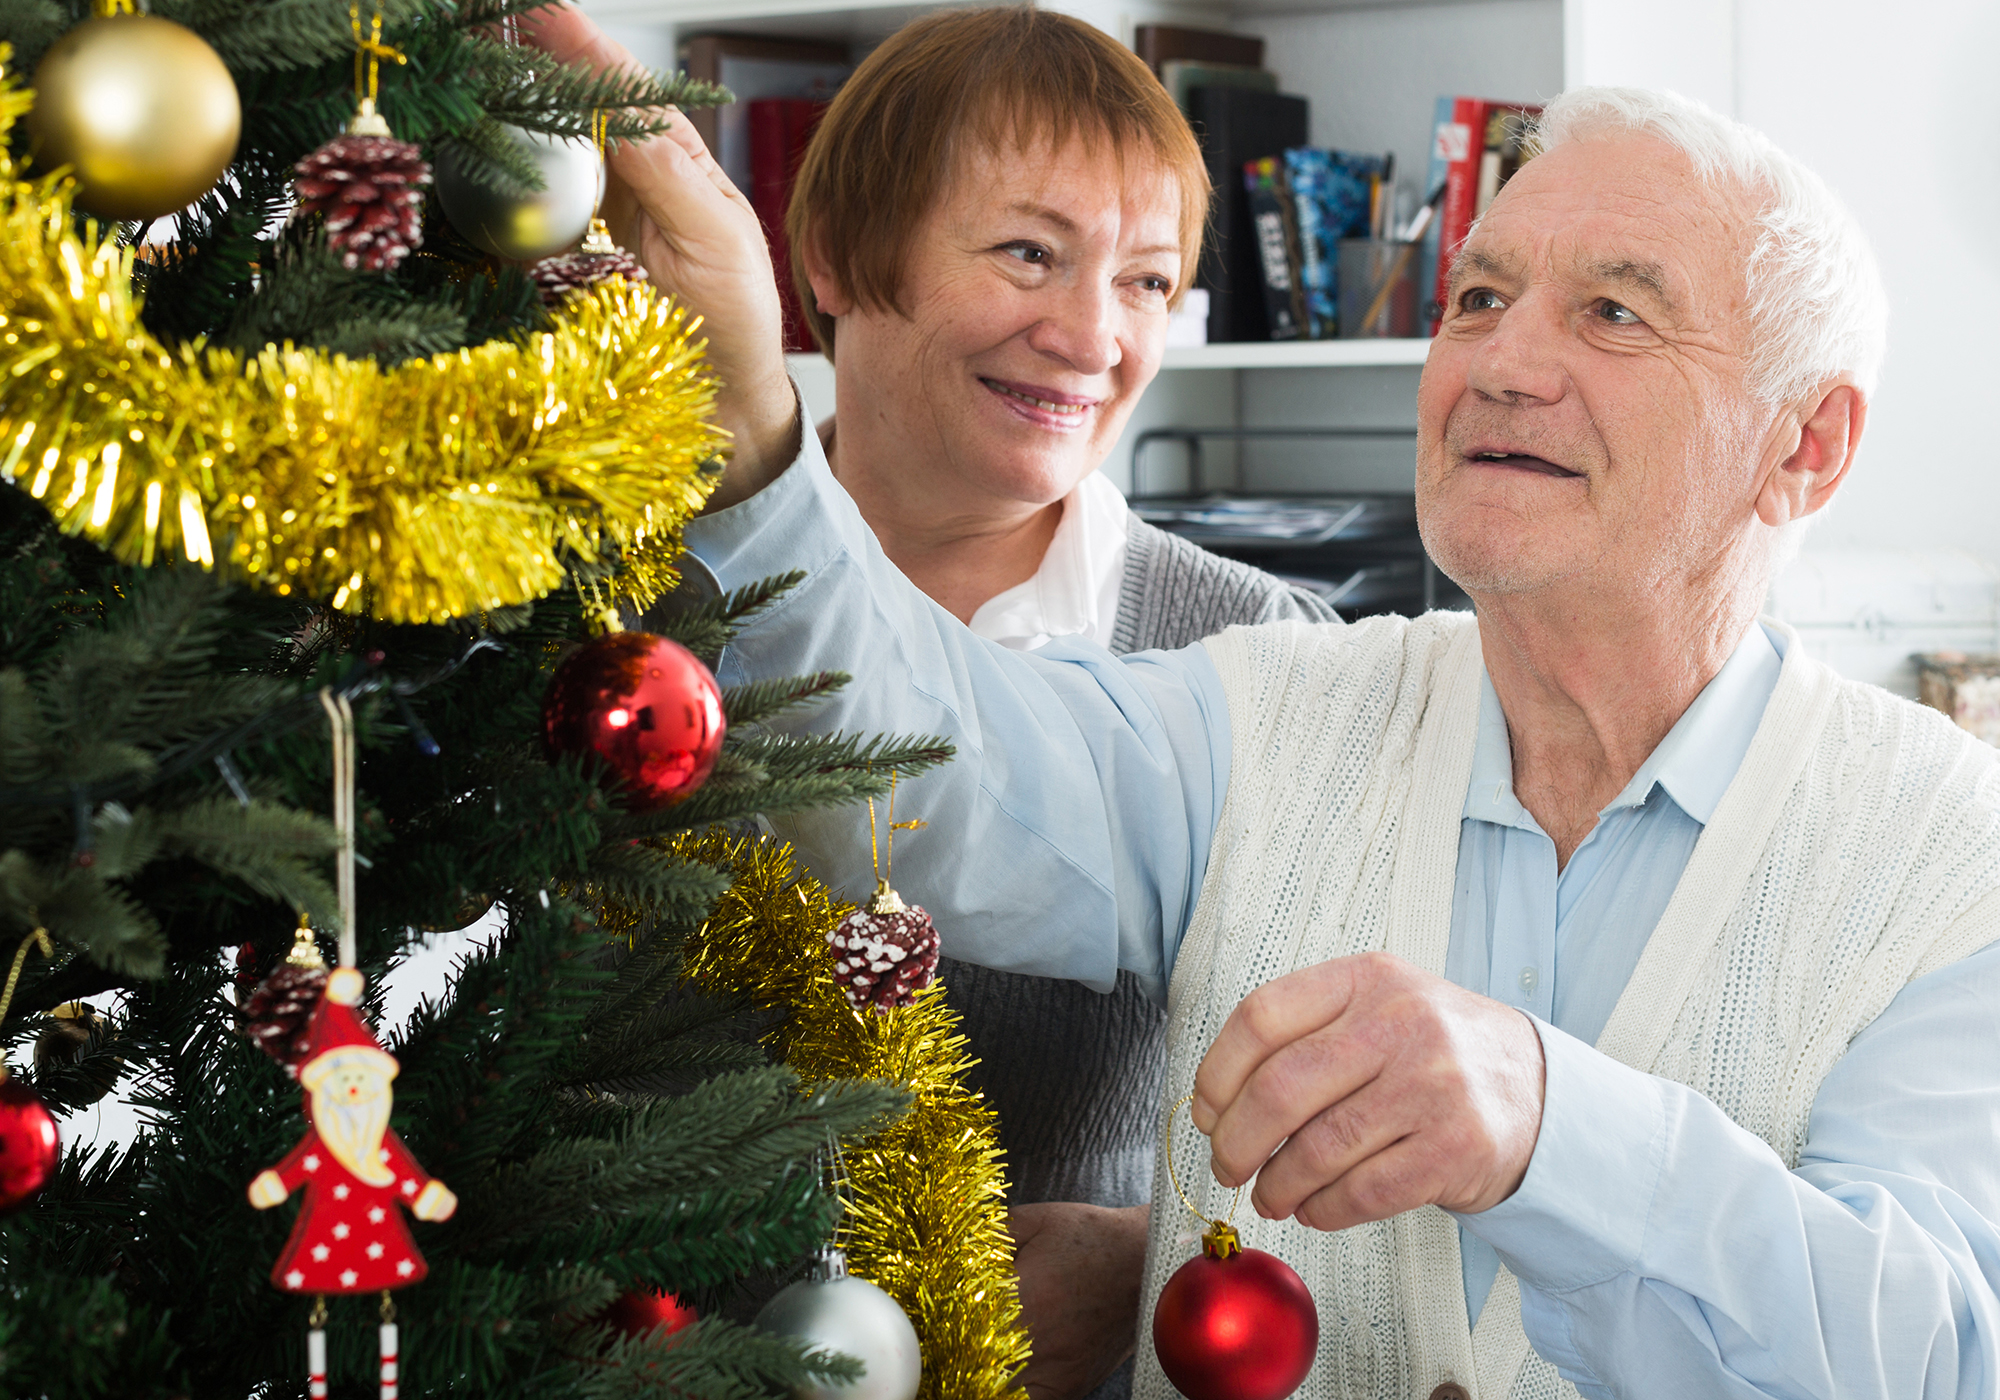 6 Tips for Managing Caregiver Stress Over the Holidays